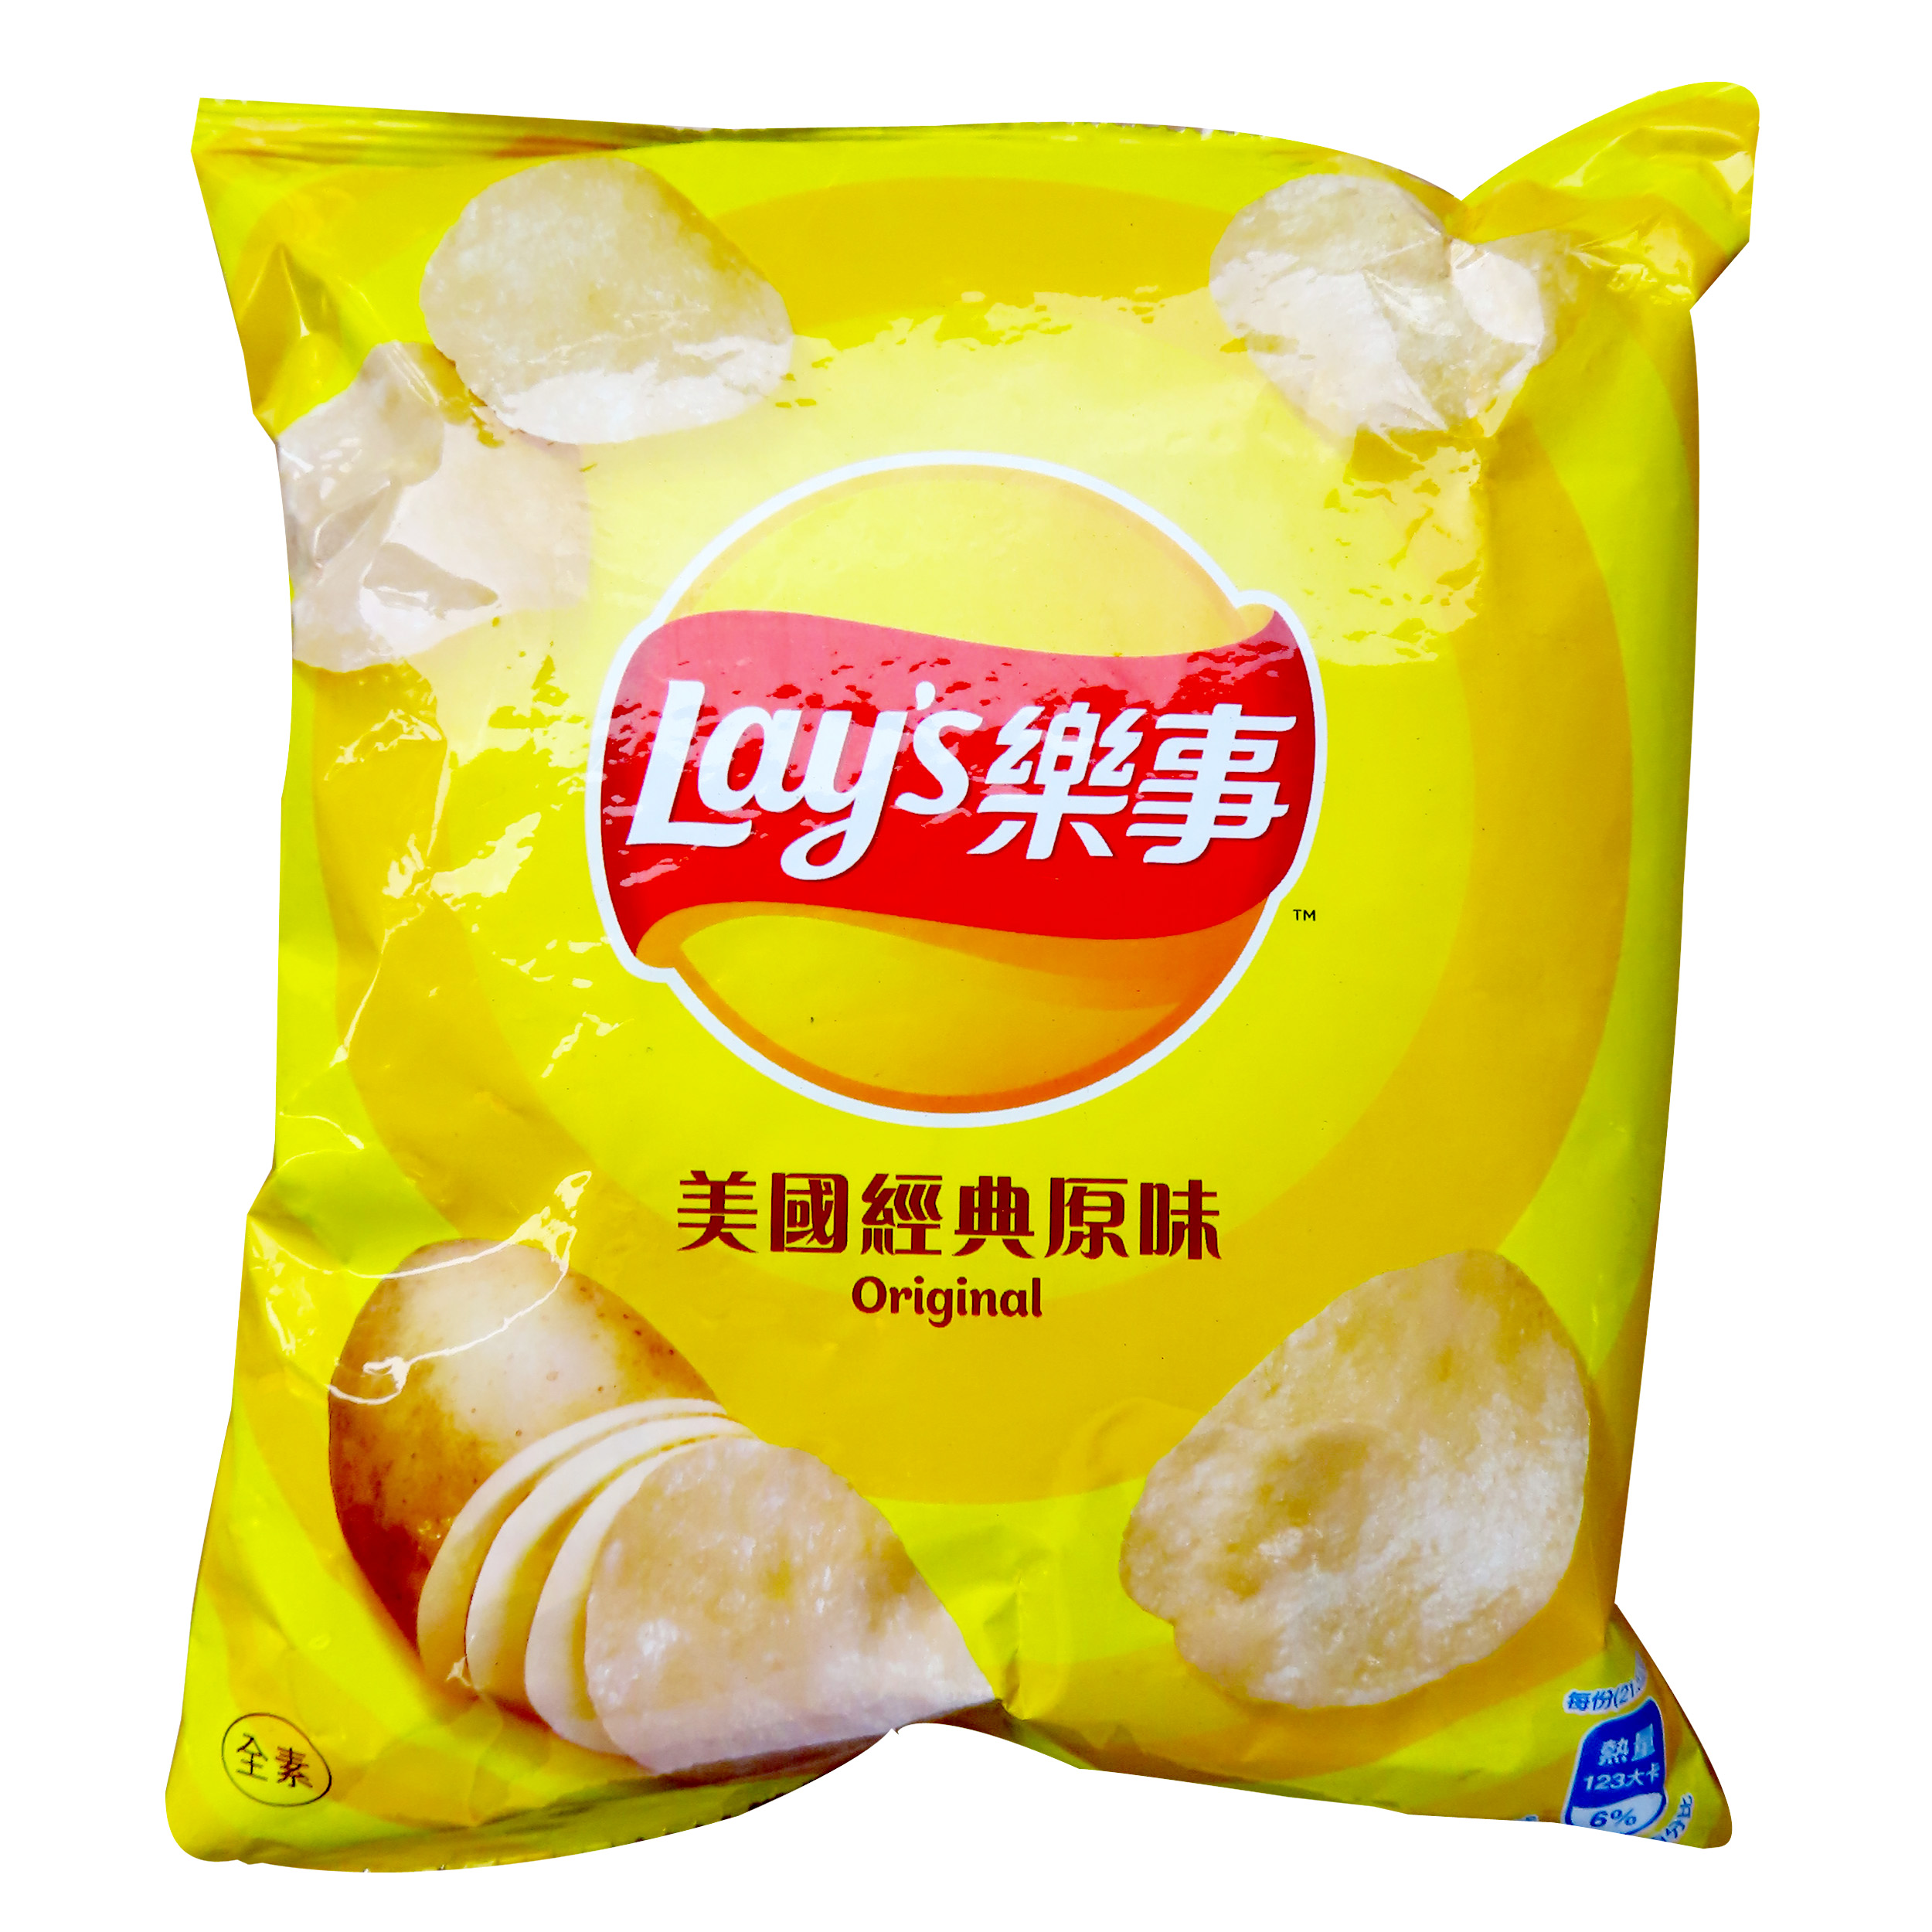 Image Lays Chips 乐事 - 洋芋片43grams